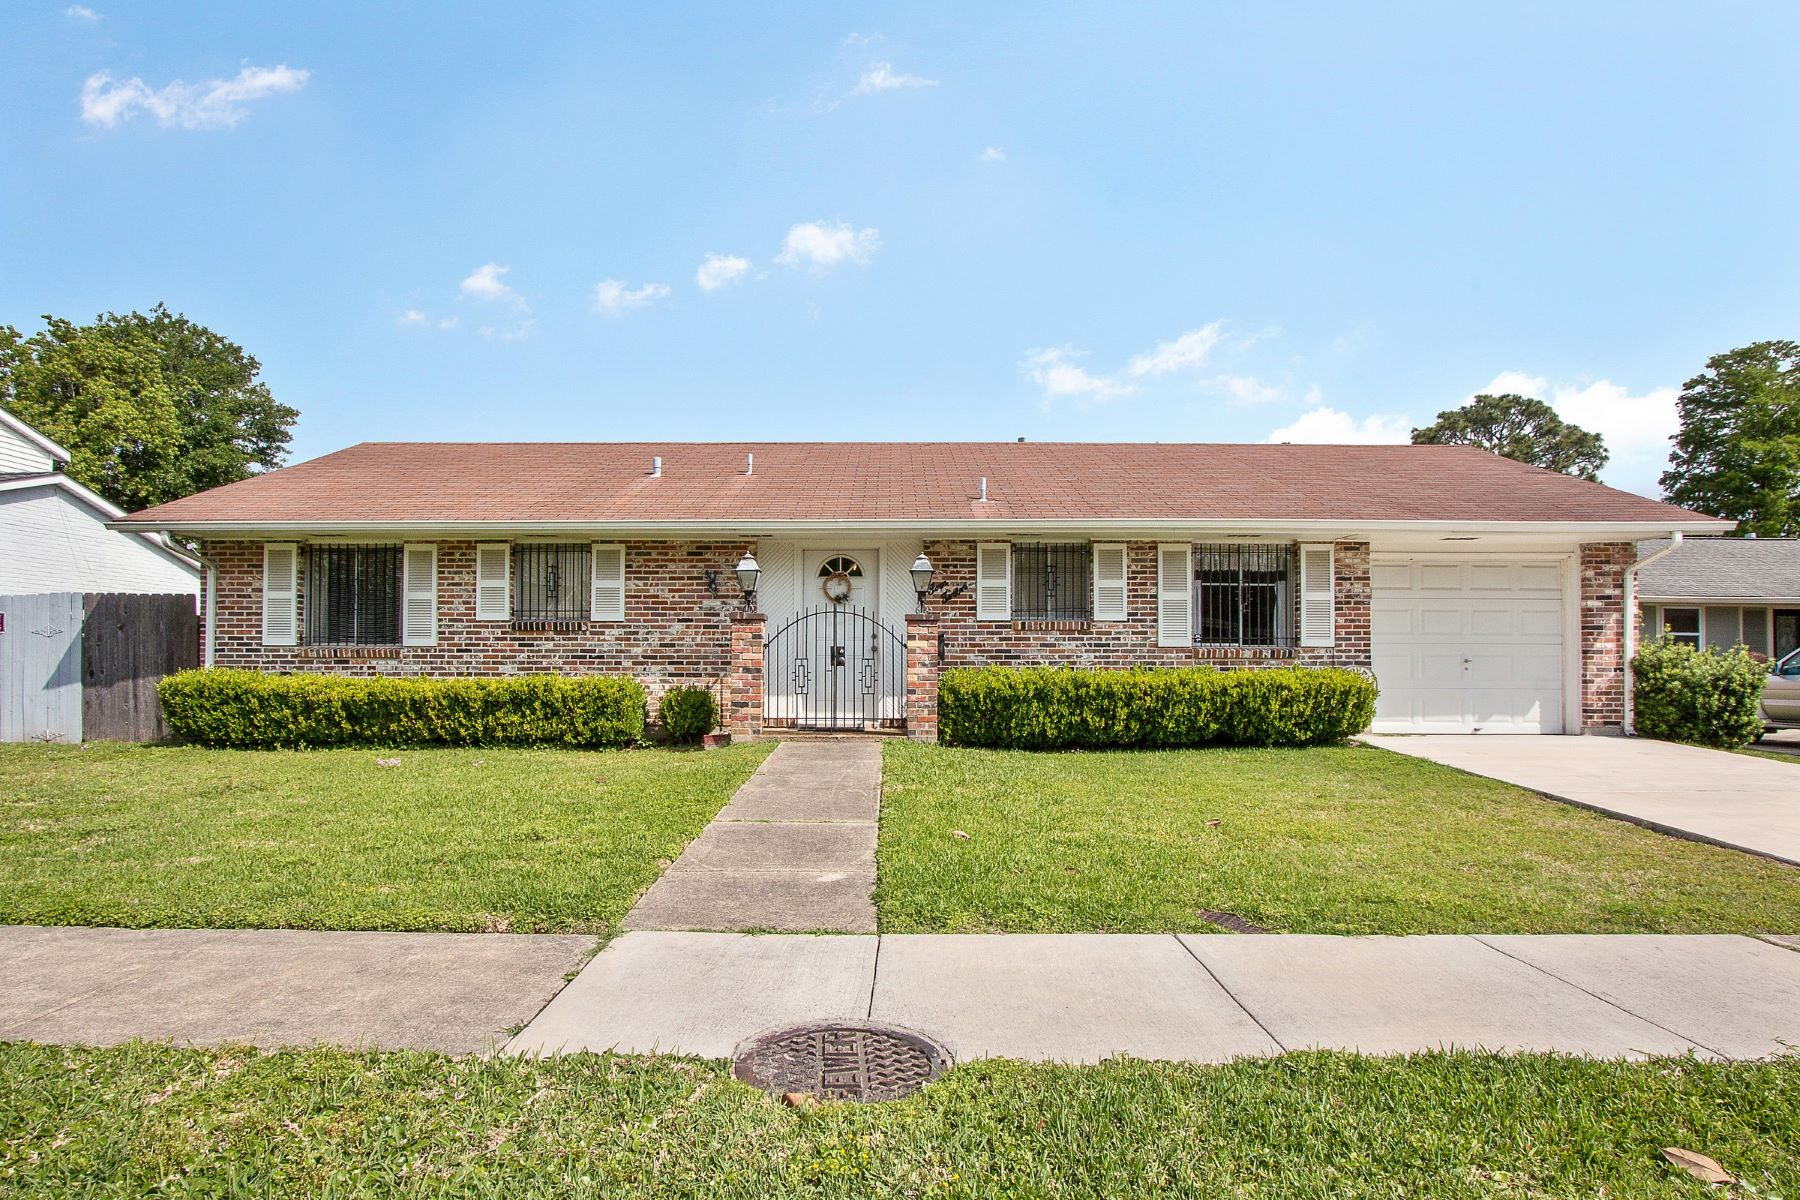 Single Family Home for Sale at 412 Holy Cross Place, Kenner 412 Holy Cross Pl Kenner, Louisiana 70065 United States